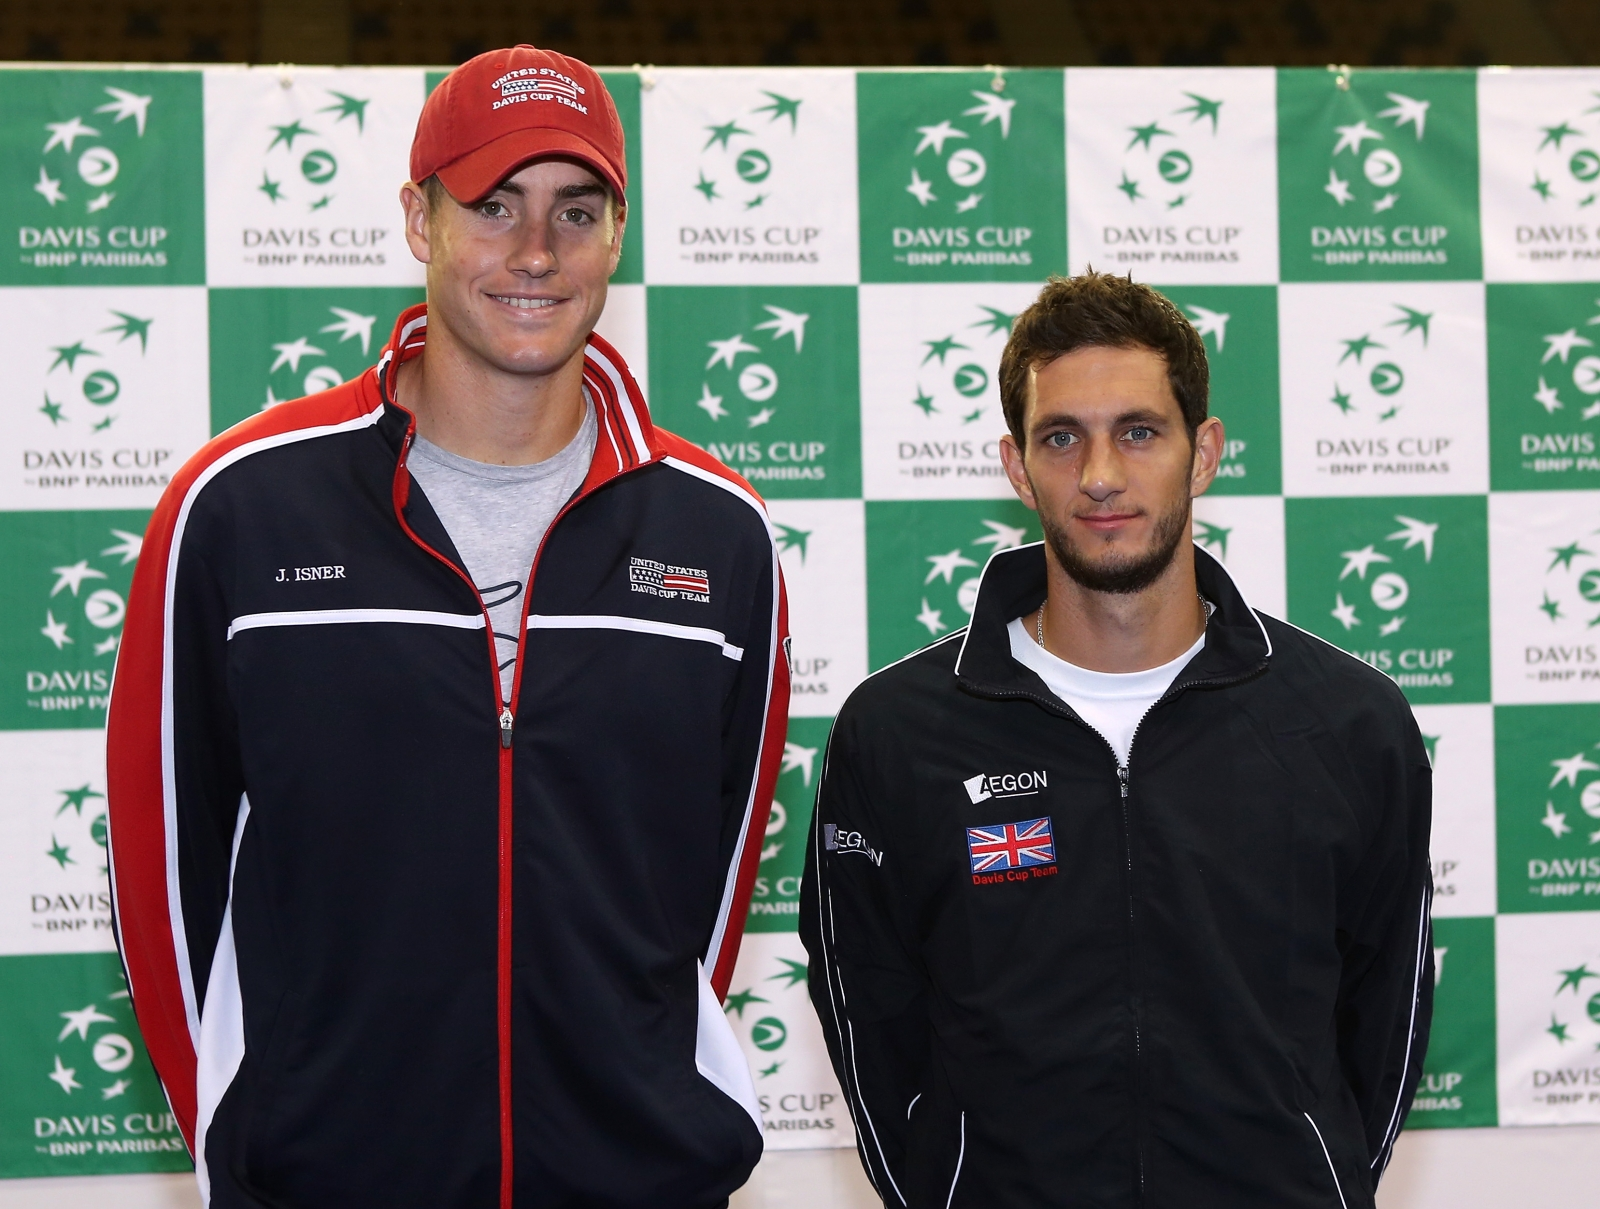 John Isner and James Ward